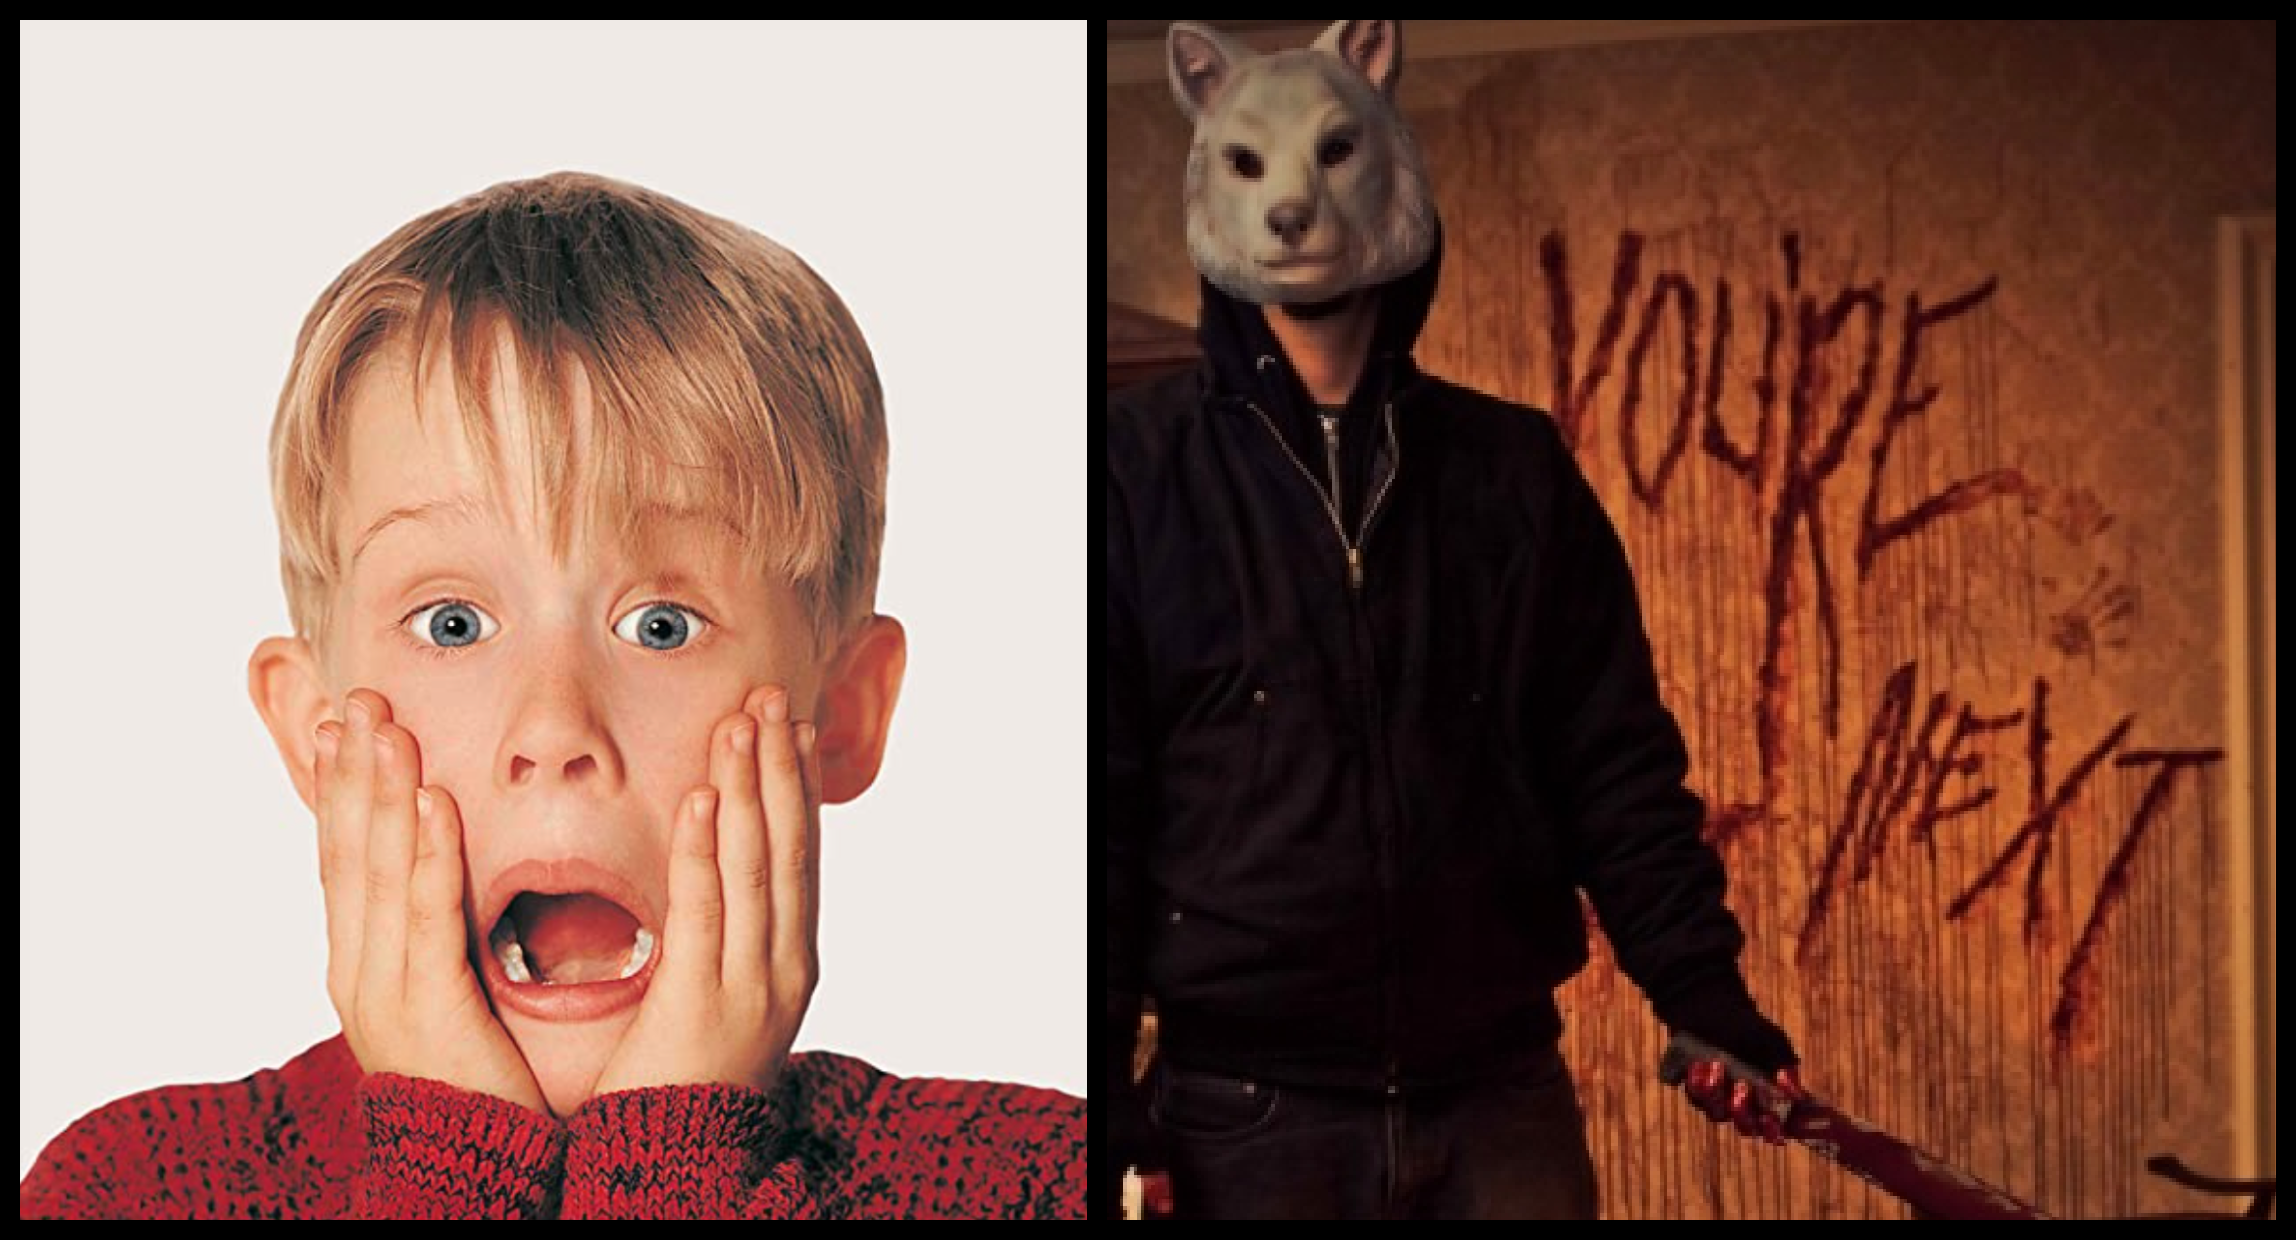 HomeAlone/You'reNext